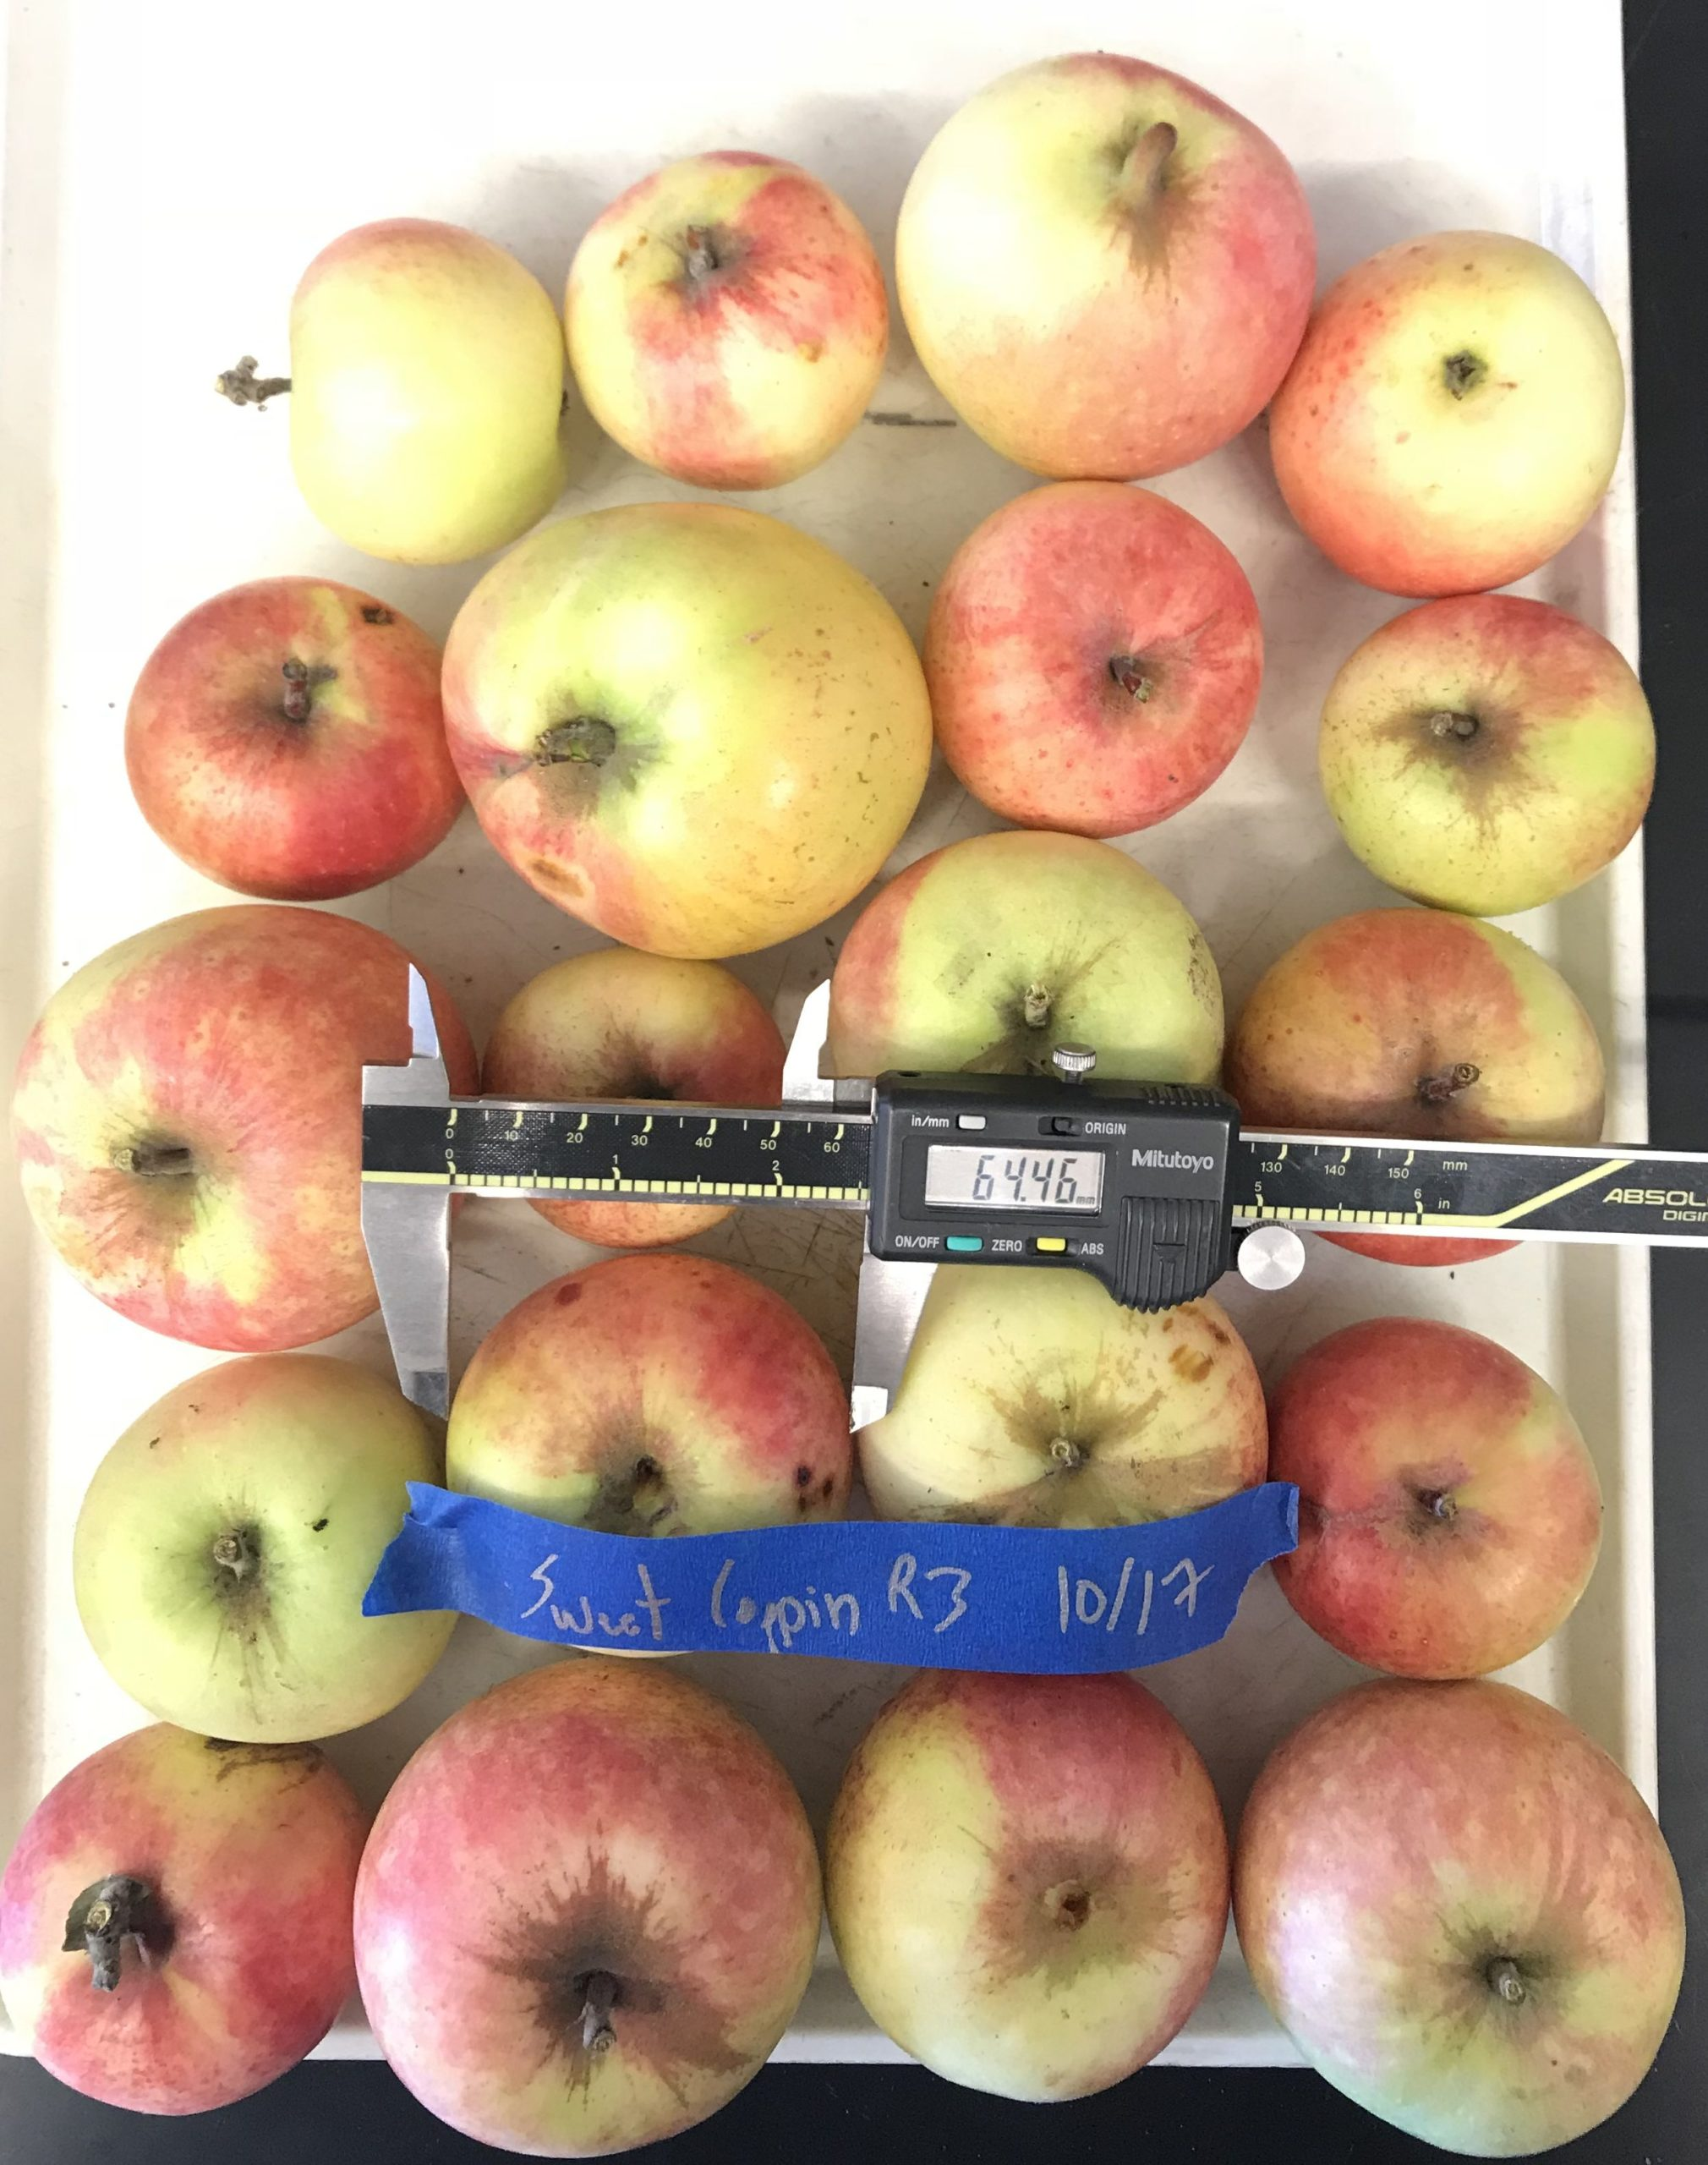 Cider Apple Variety: Sweet-Coppin